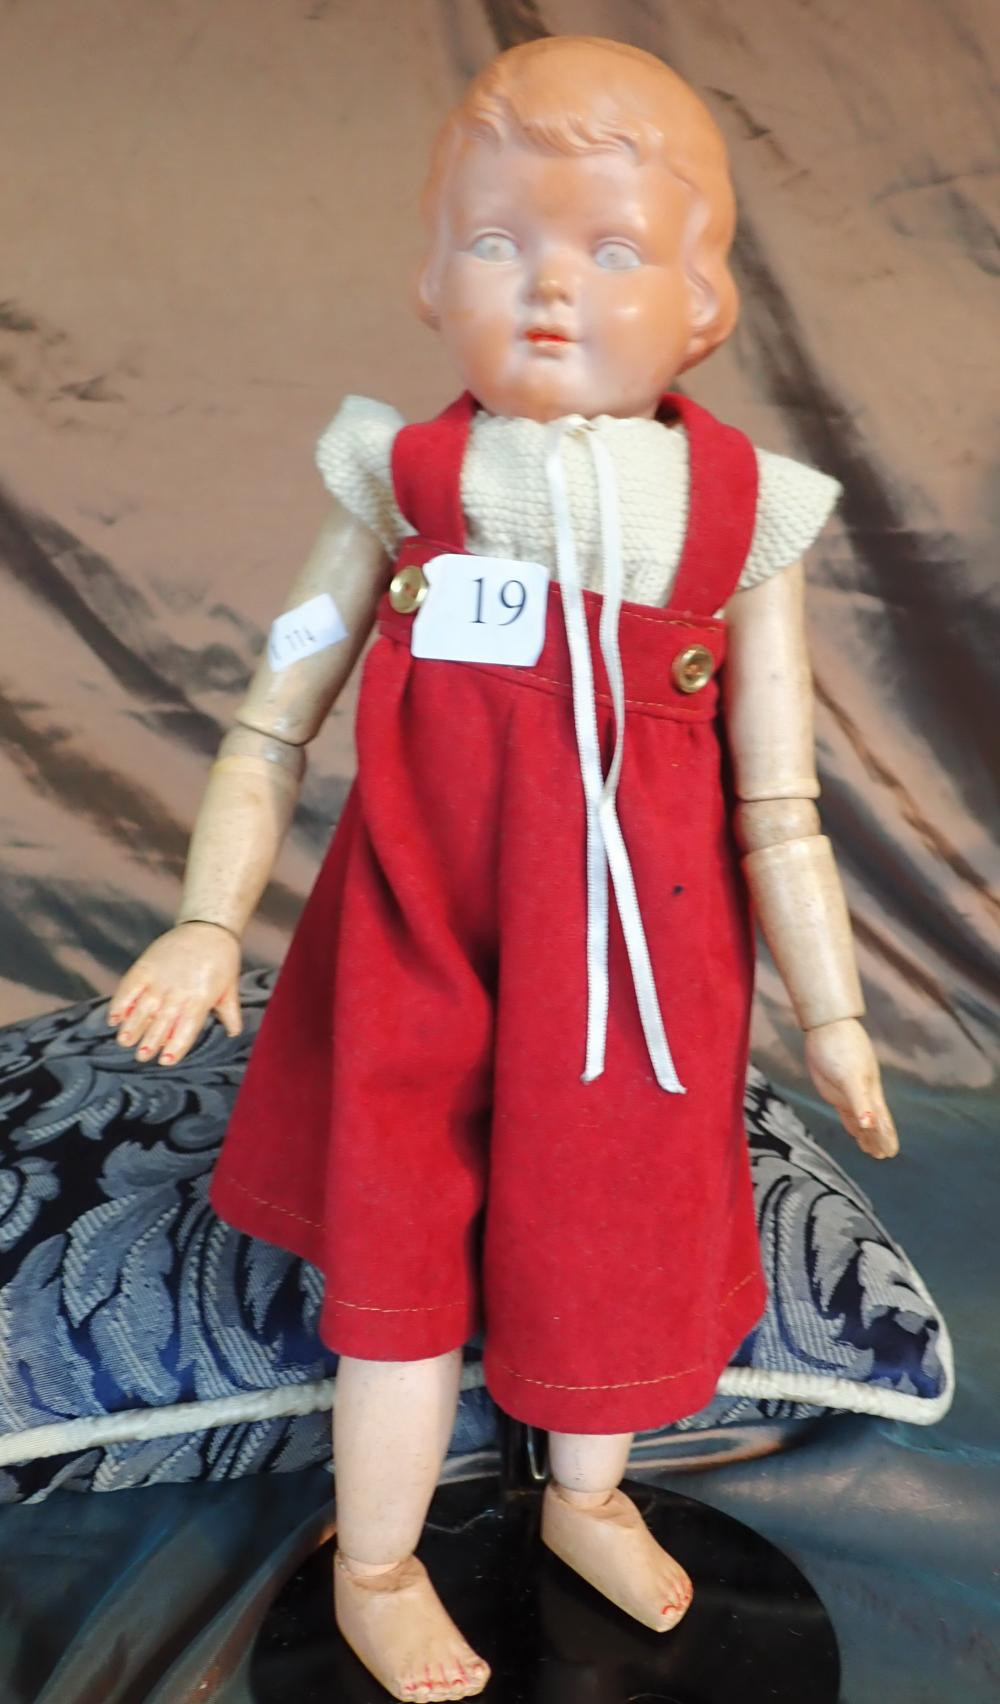 "16"" SCHUTZ MARKE HEART SYMBOL H2 DOLL WITH CELLULOID HEAD, COMPOSITE BODY, ARMS & LEGS, EARLY 1920, FADING TO EYES OTHERWISE GOOD CONDITION"